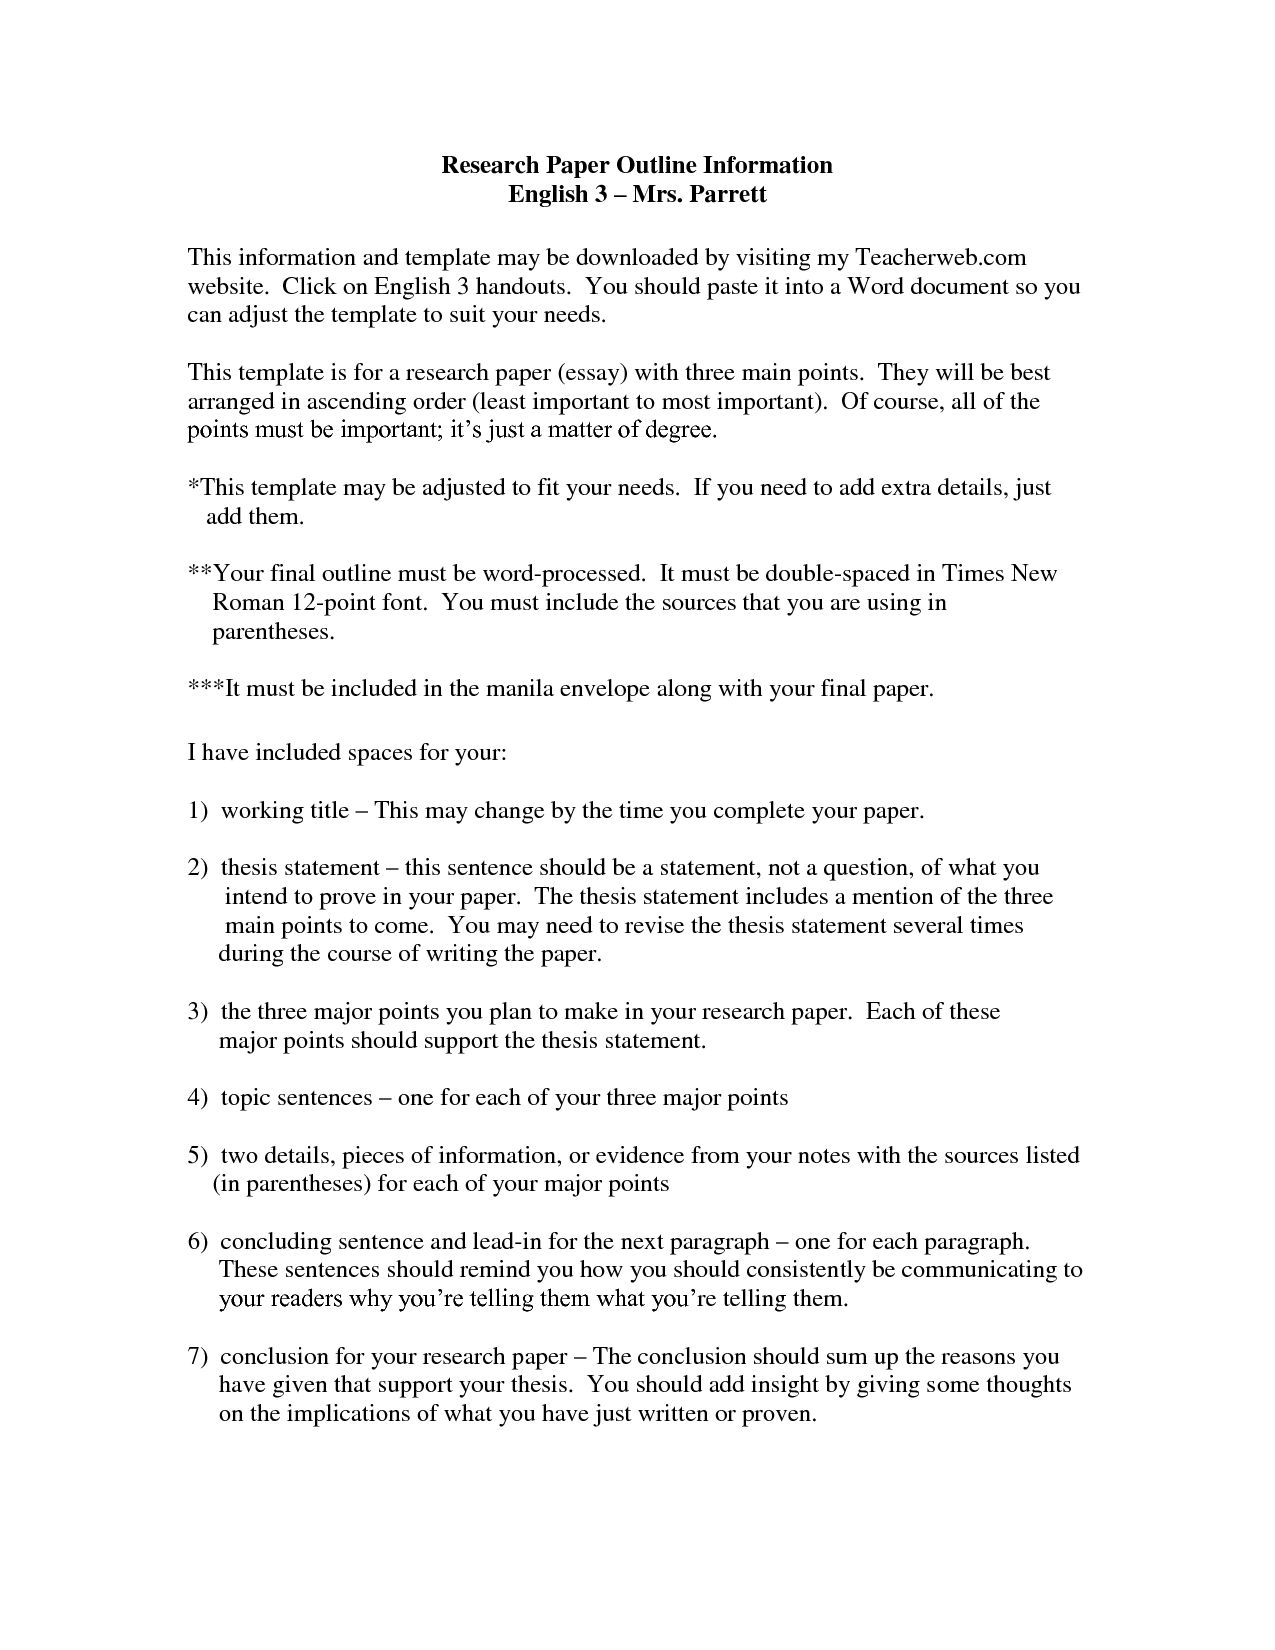 The Breathtaking 019 Examples Of Thesis Statements For Researchs Template Pertaining To Apa Word Template 6 Thesis Statement Essay Outline Essay Outline Format